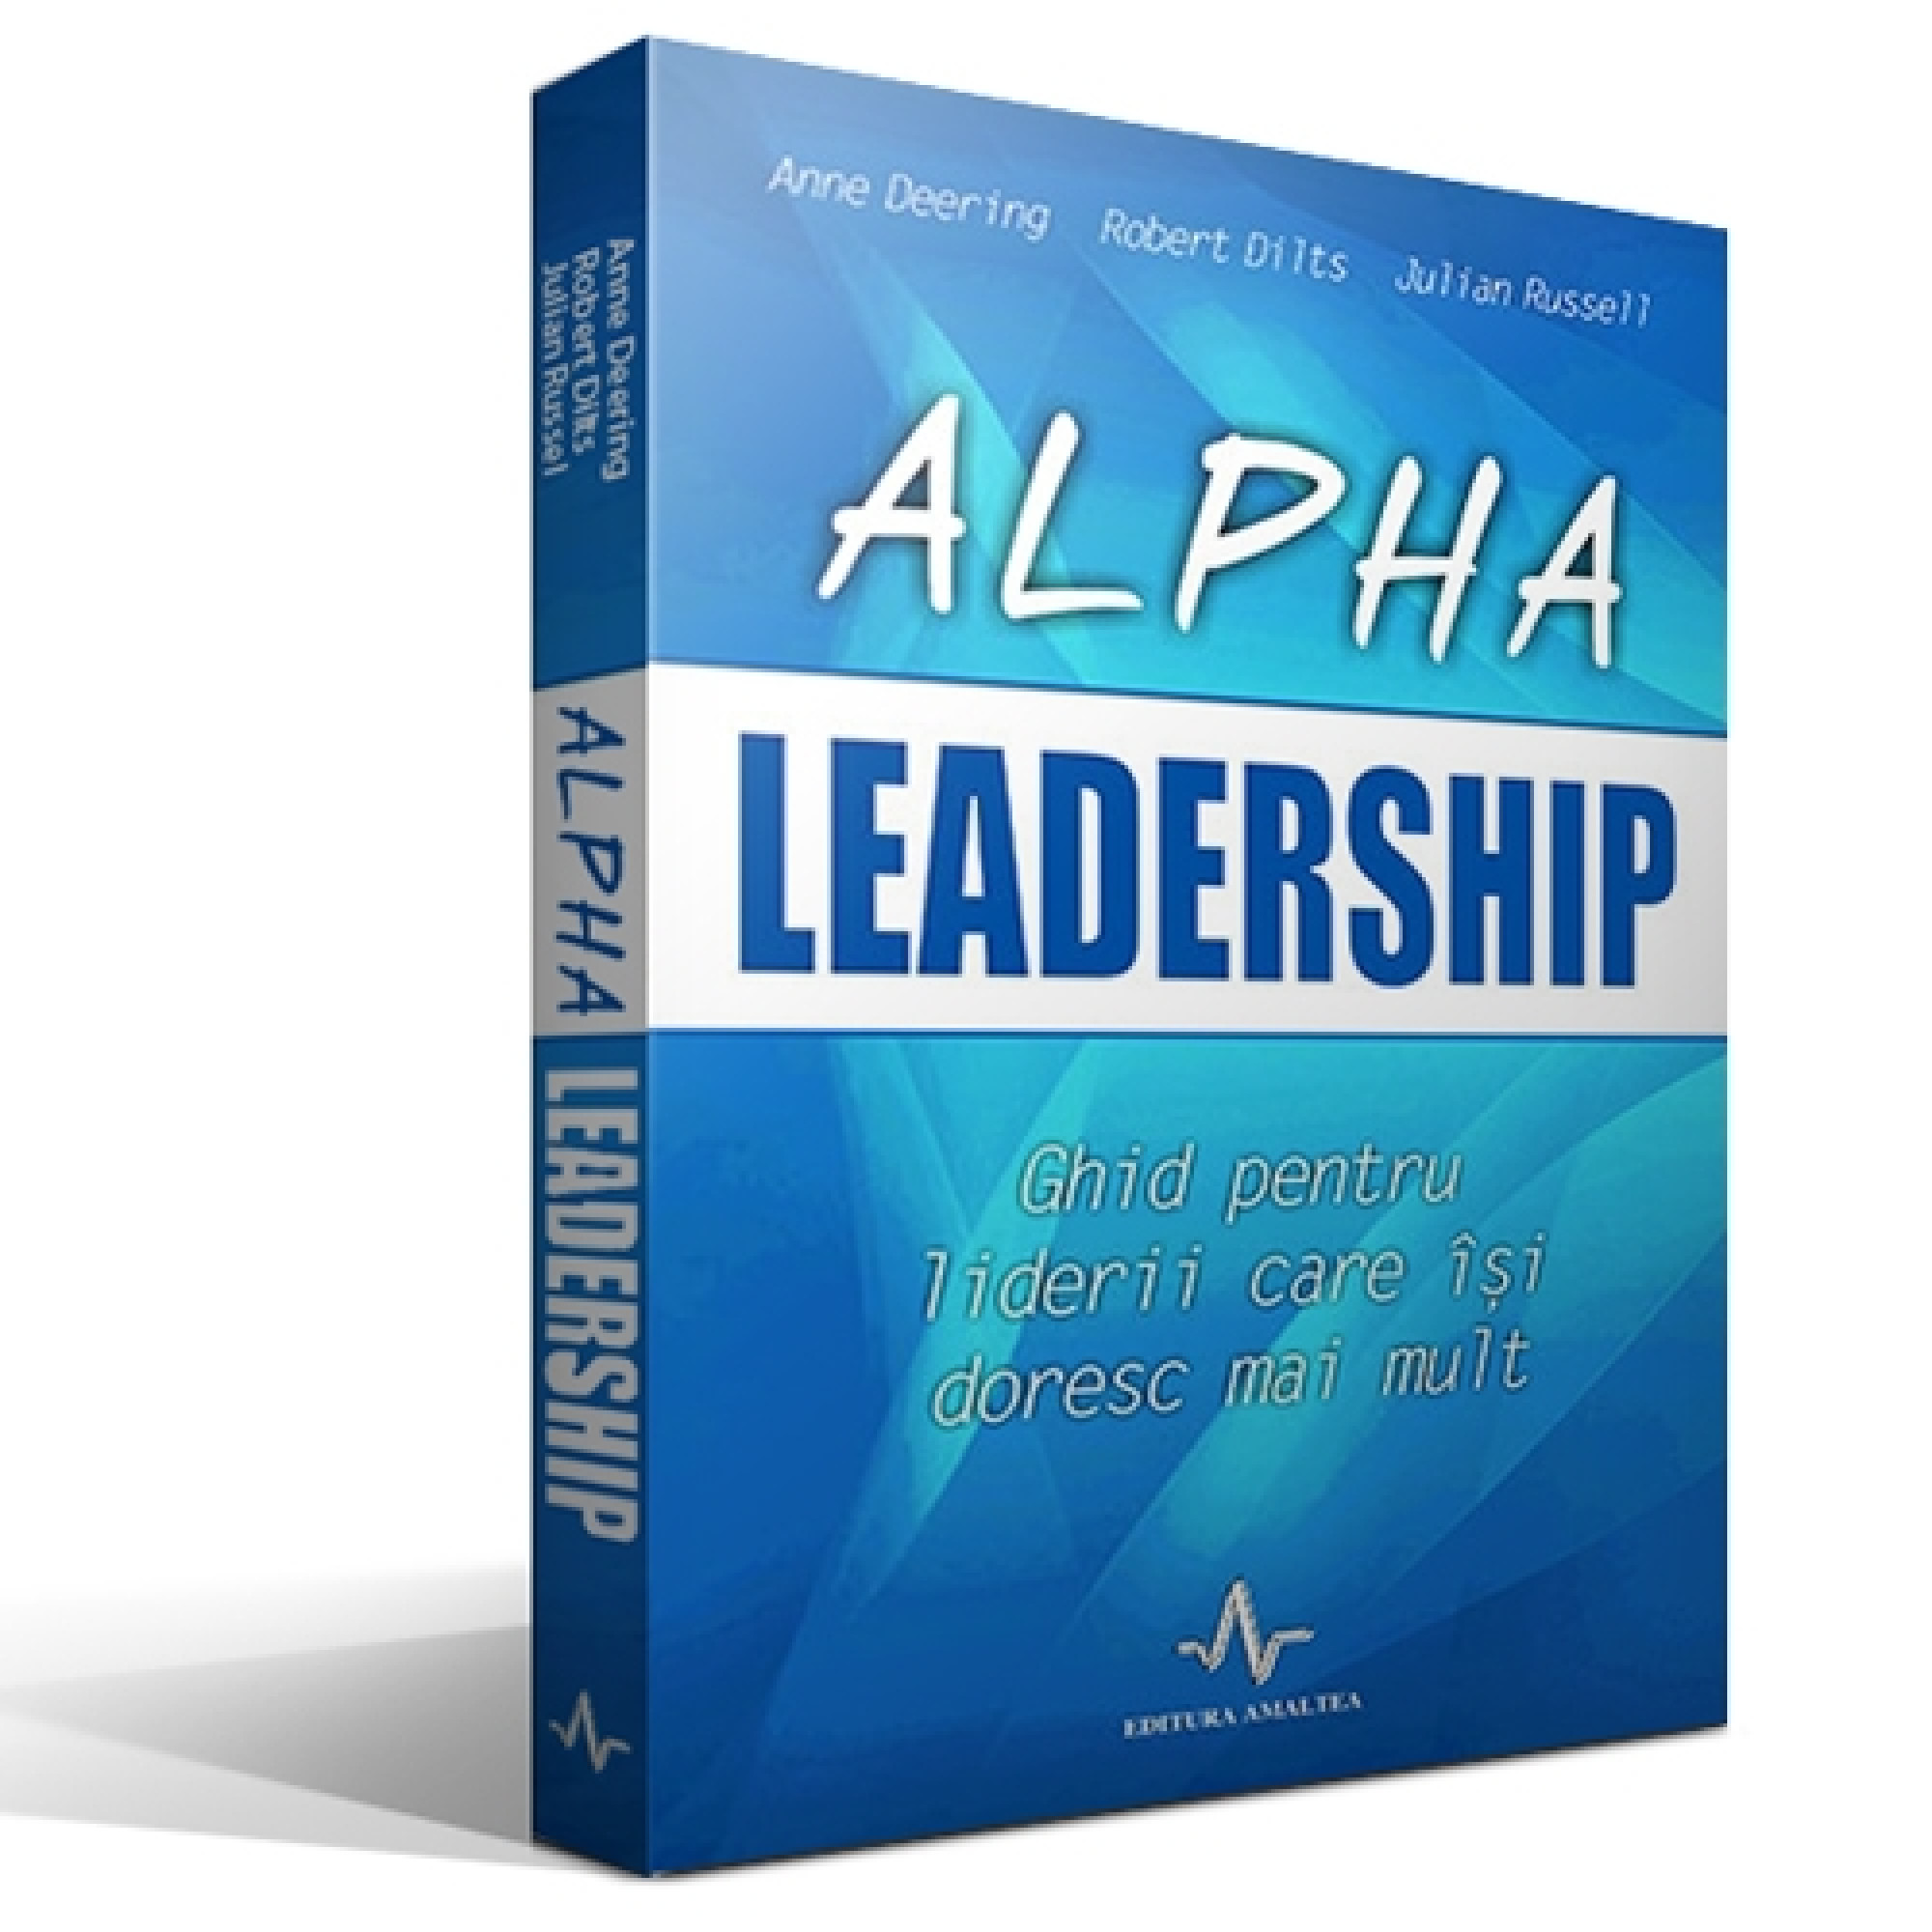 Alpha Leadership; Anne Deering, Robert Dilts, Julian Russell